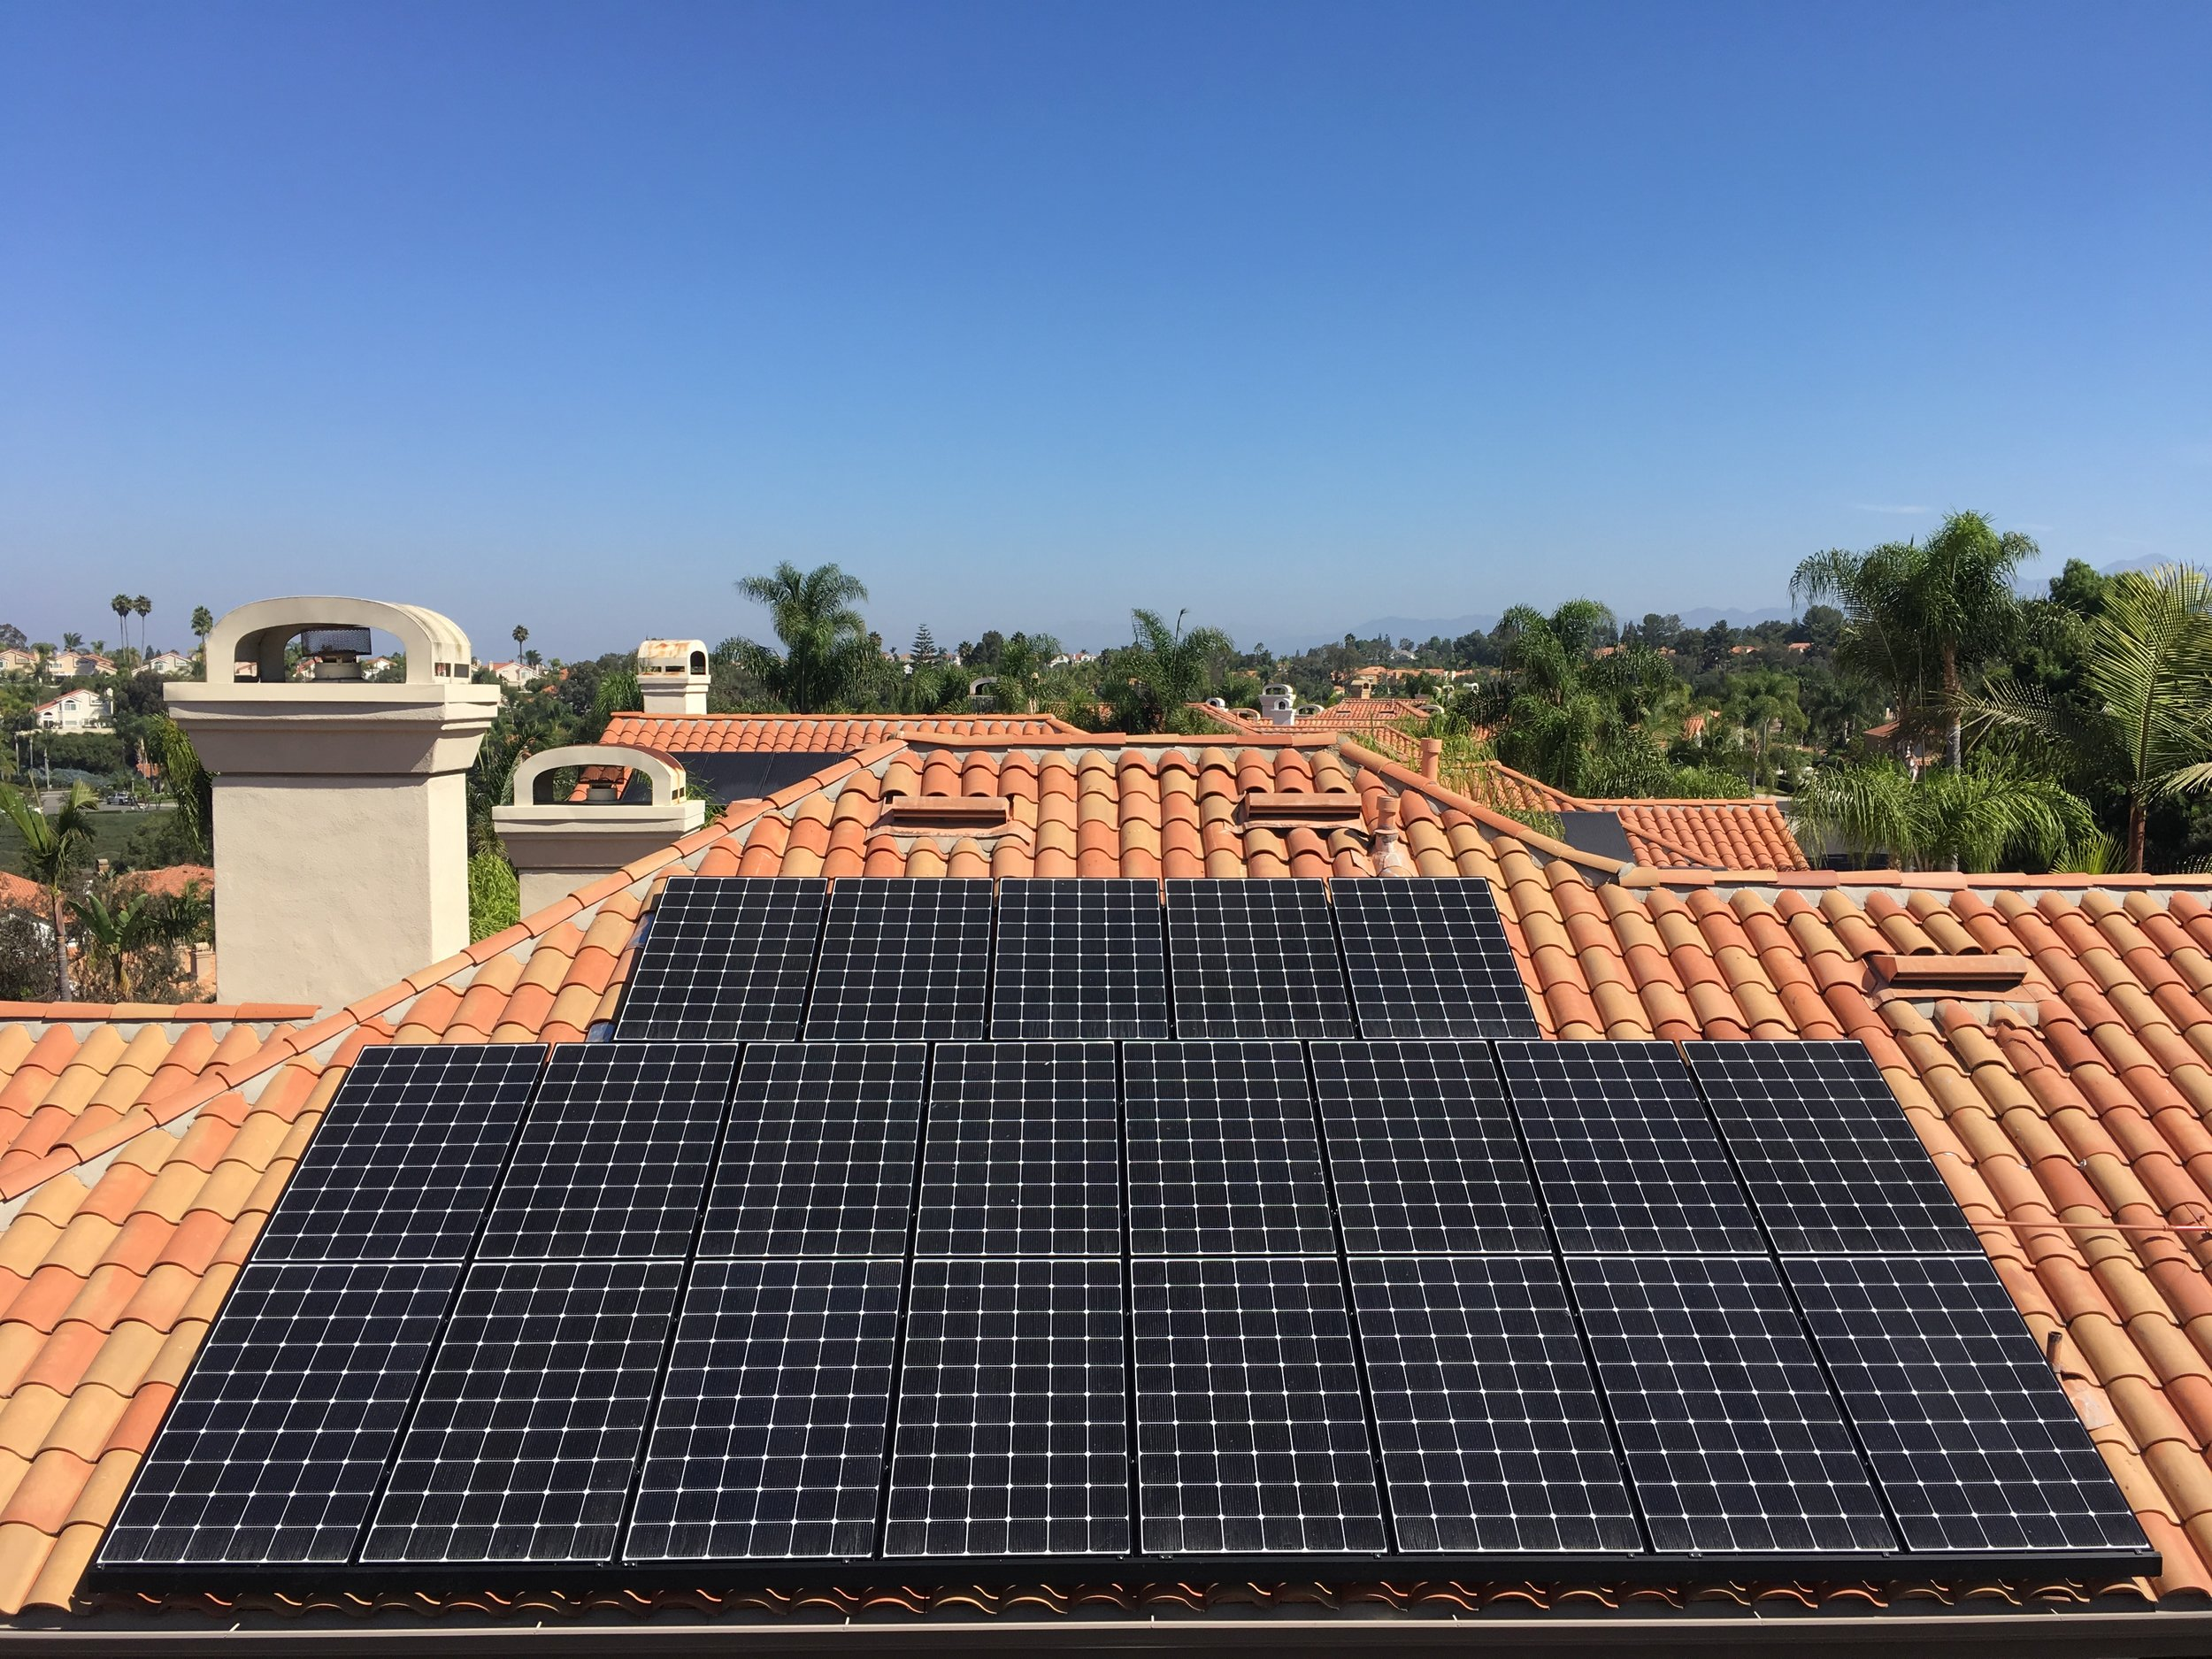 LAGUNA NIGUEL, CA - 21 high efficiency PV modules total to 7.0 kWDC located in Laguna Niguel. This system was commissioned in 2018 and is expected to save the Homeowner $140,000 in electricity bills over the next 25 years.